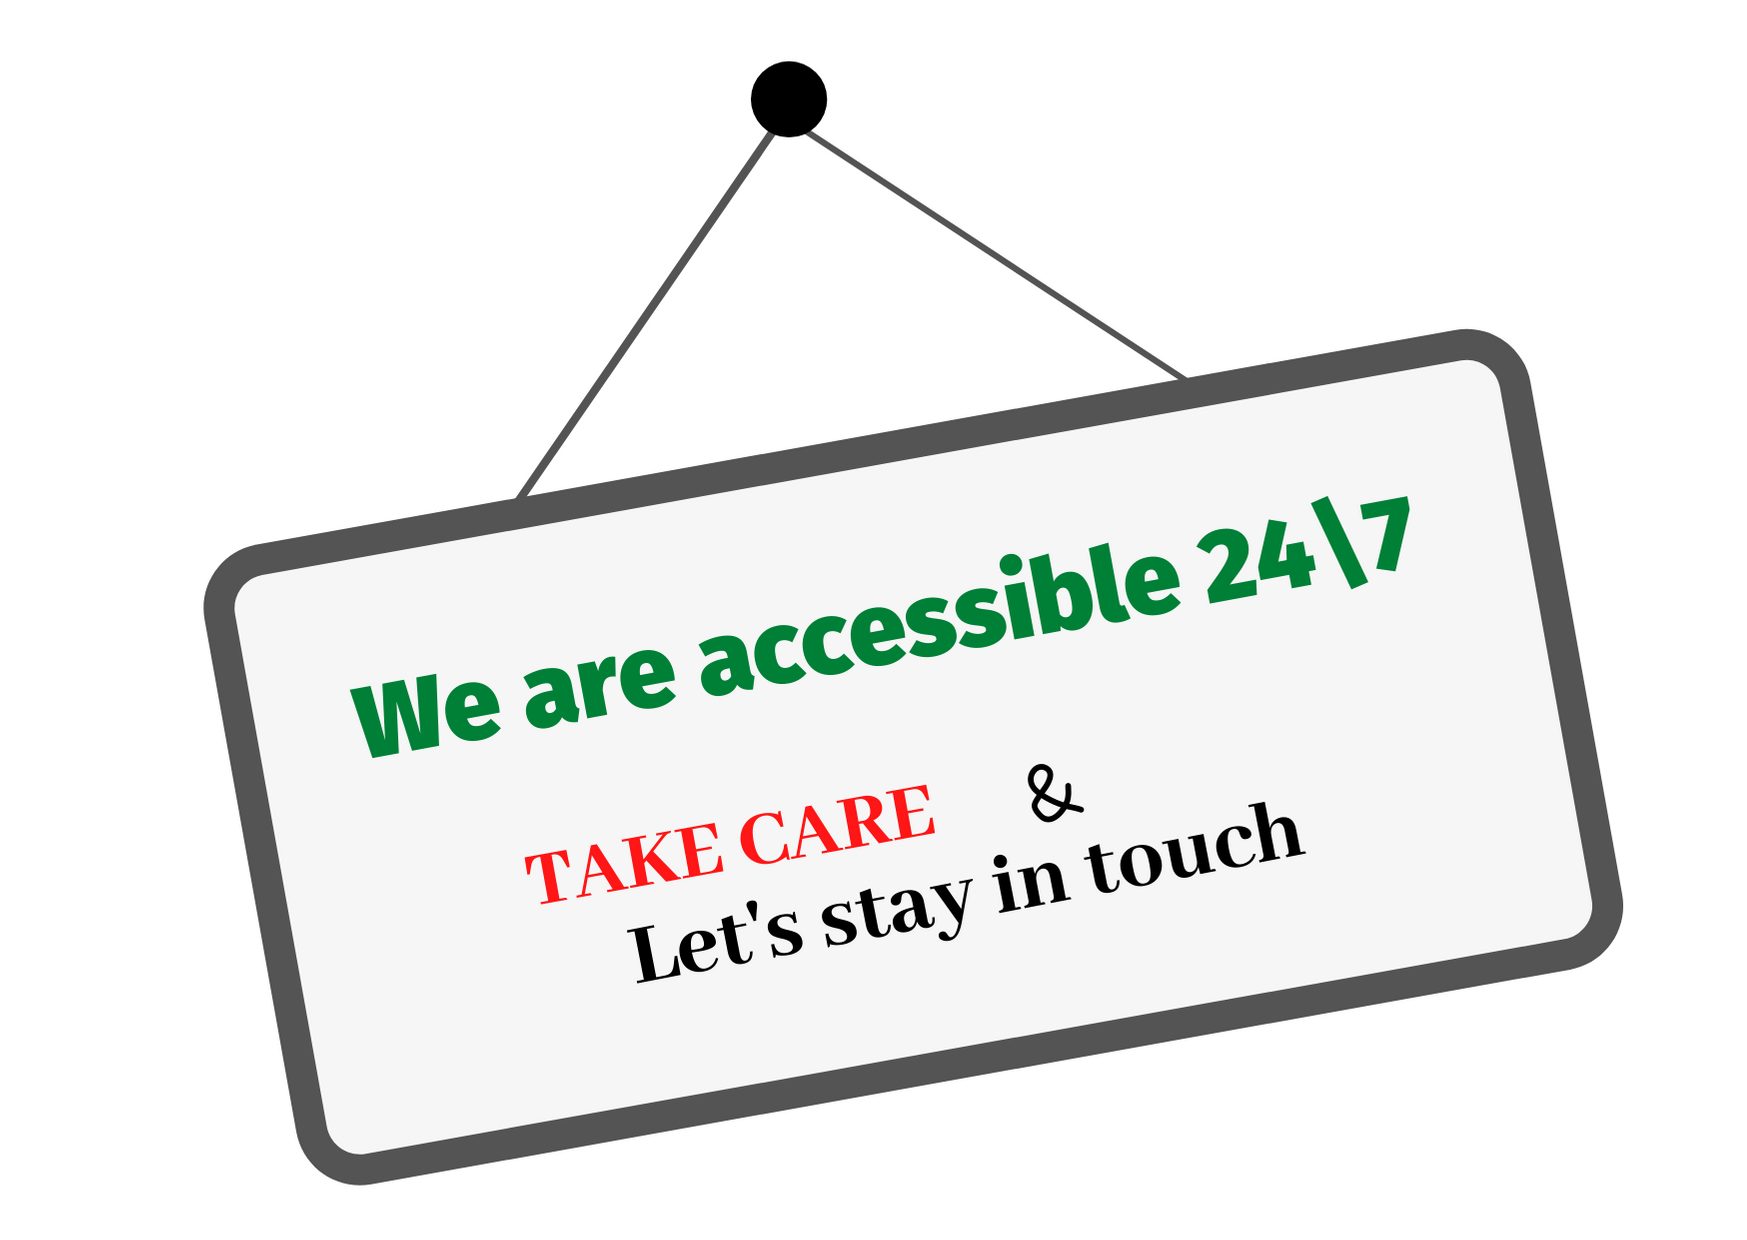 We are accessible !